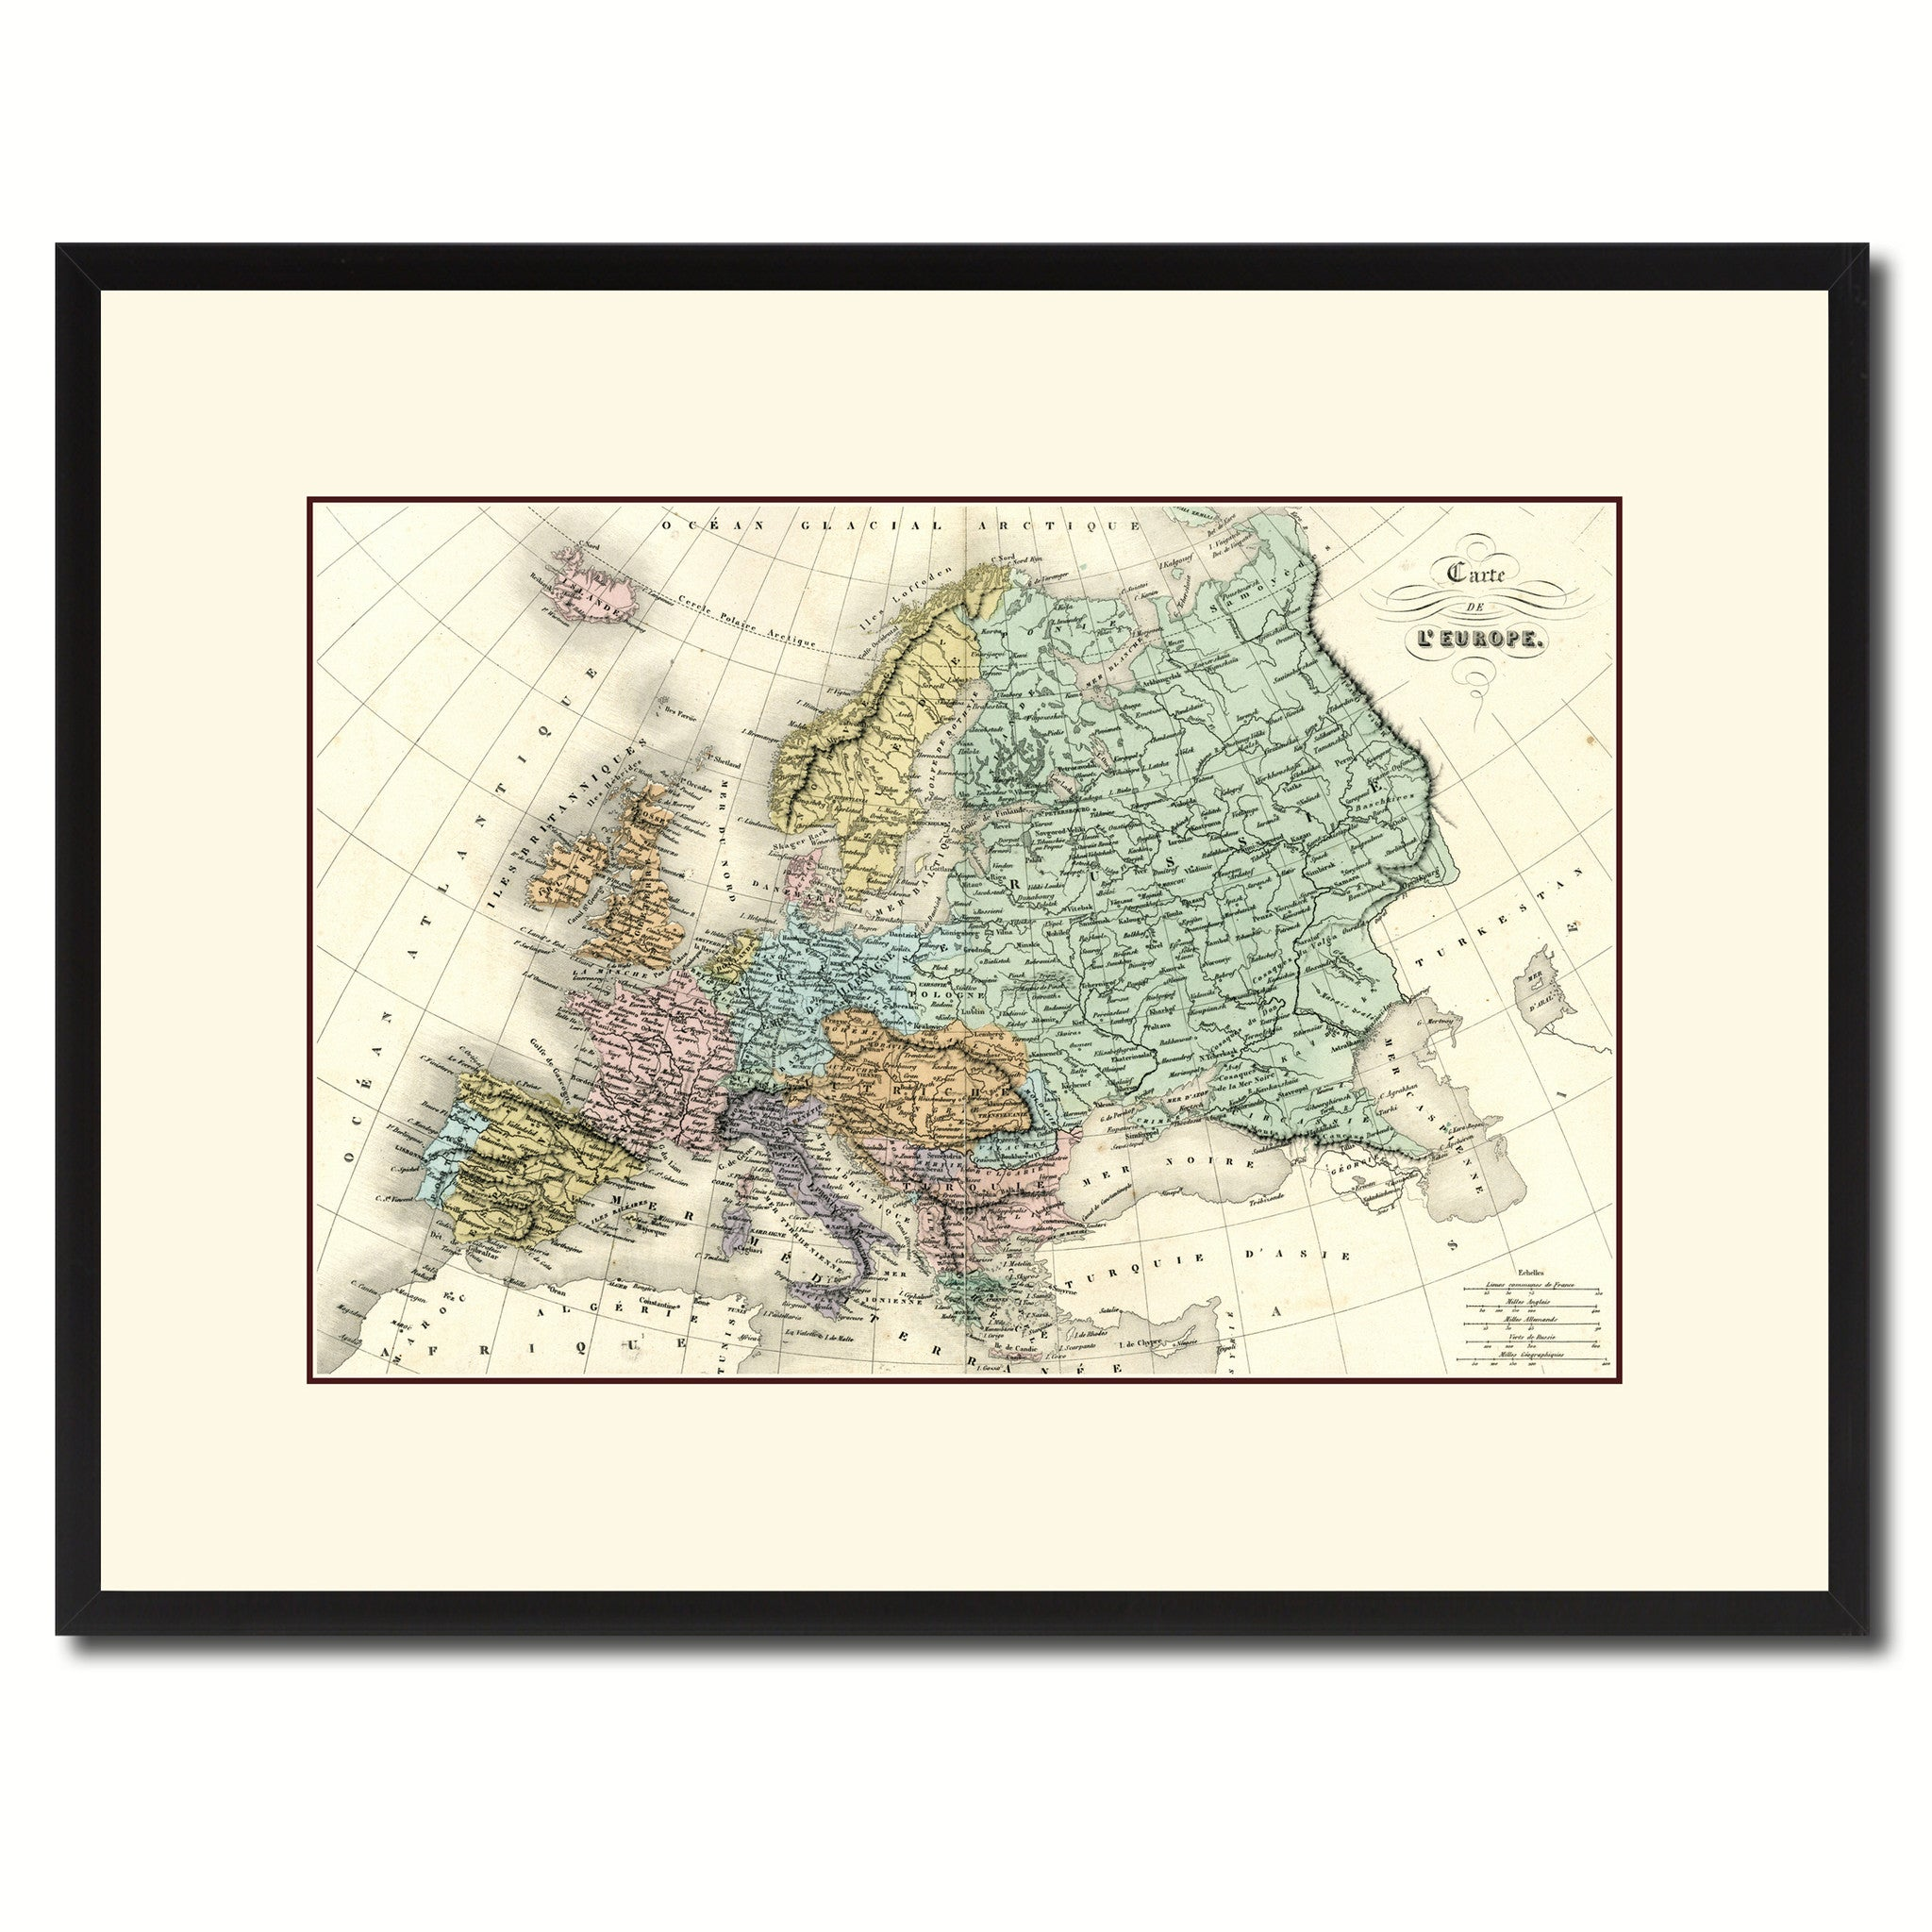 Europe Vintage Antique Map Wall Art Home Decor Gift Ideas